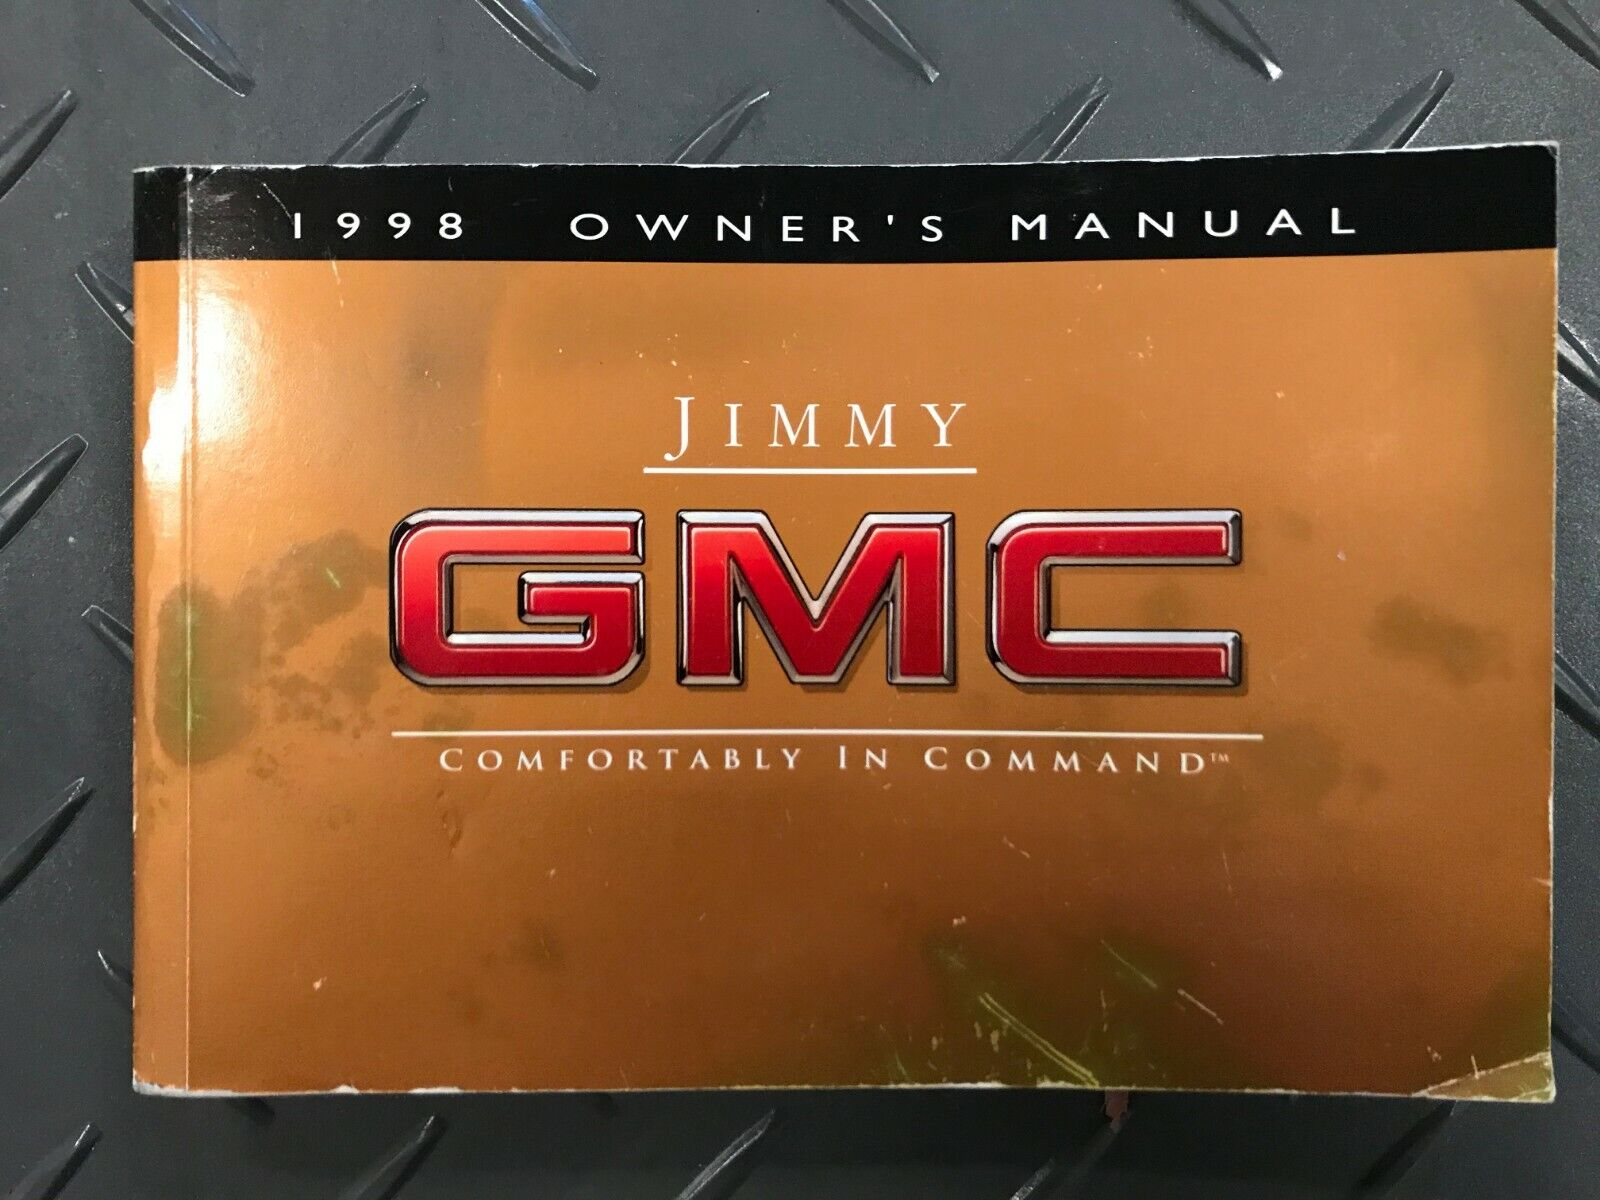 1998 Jimmy GMC Owner's Manual Genuine OEM X9811 FREE SHIPPING!